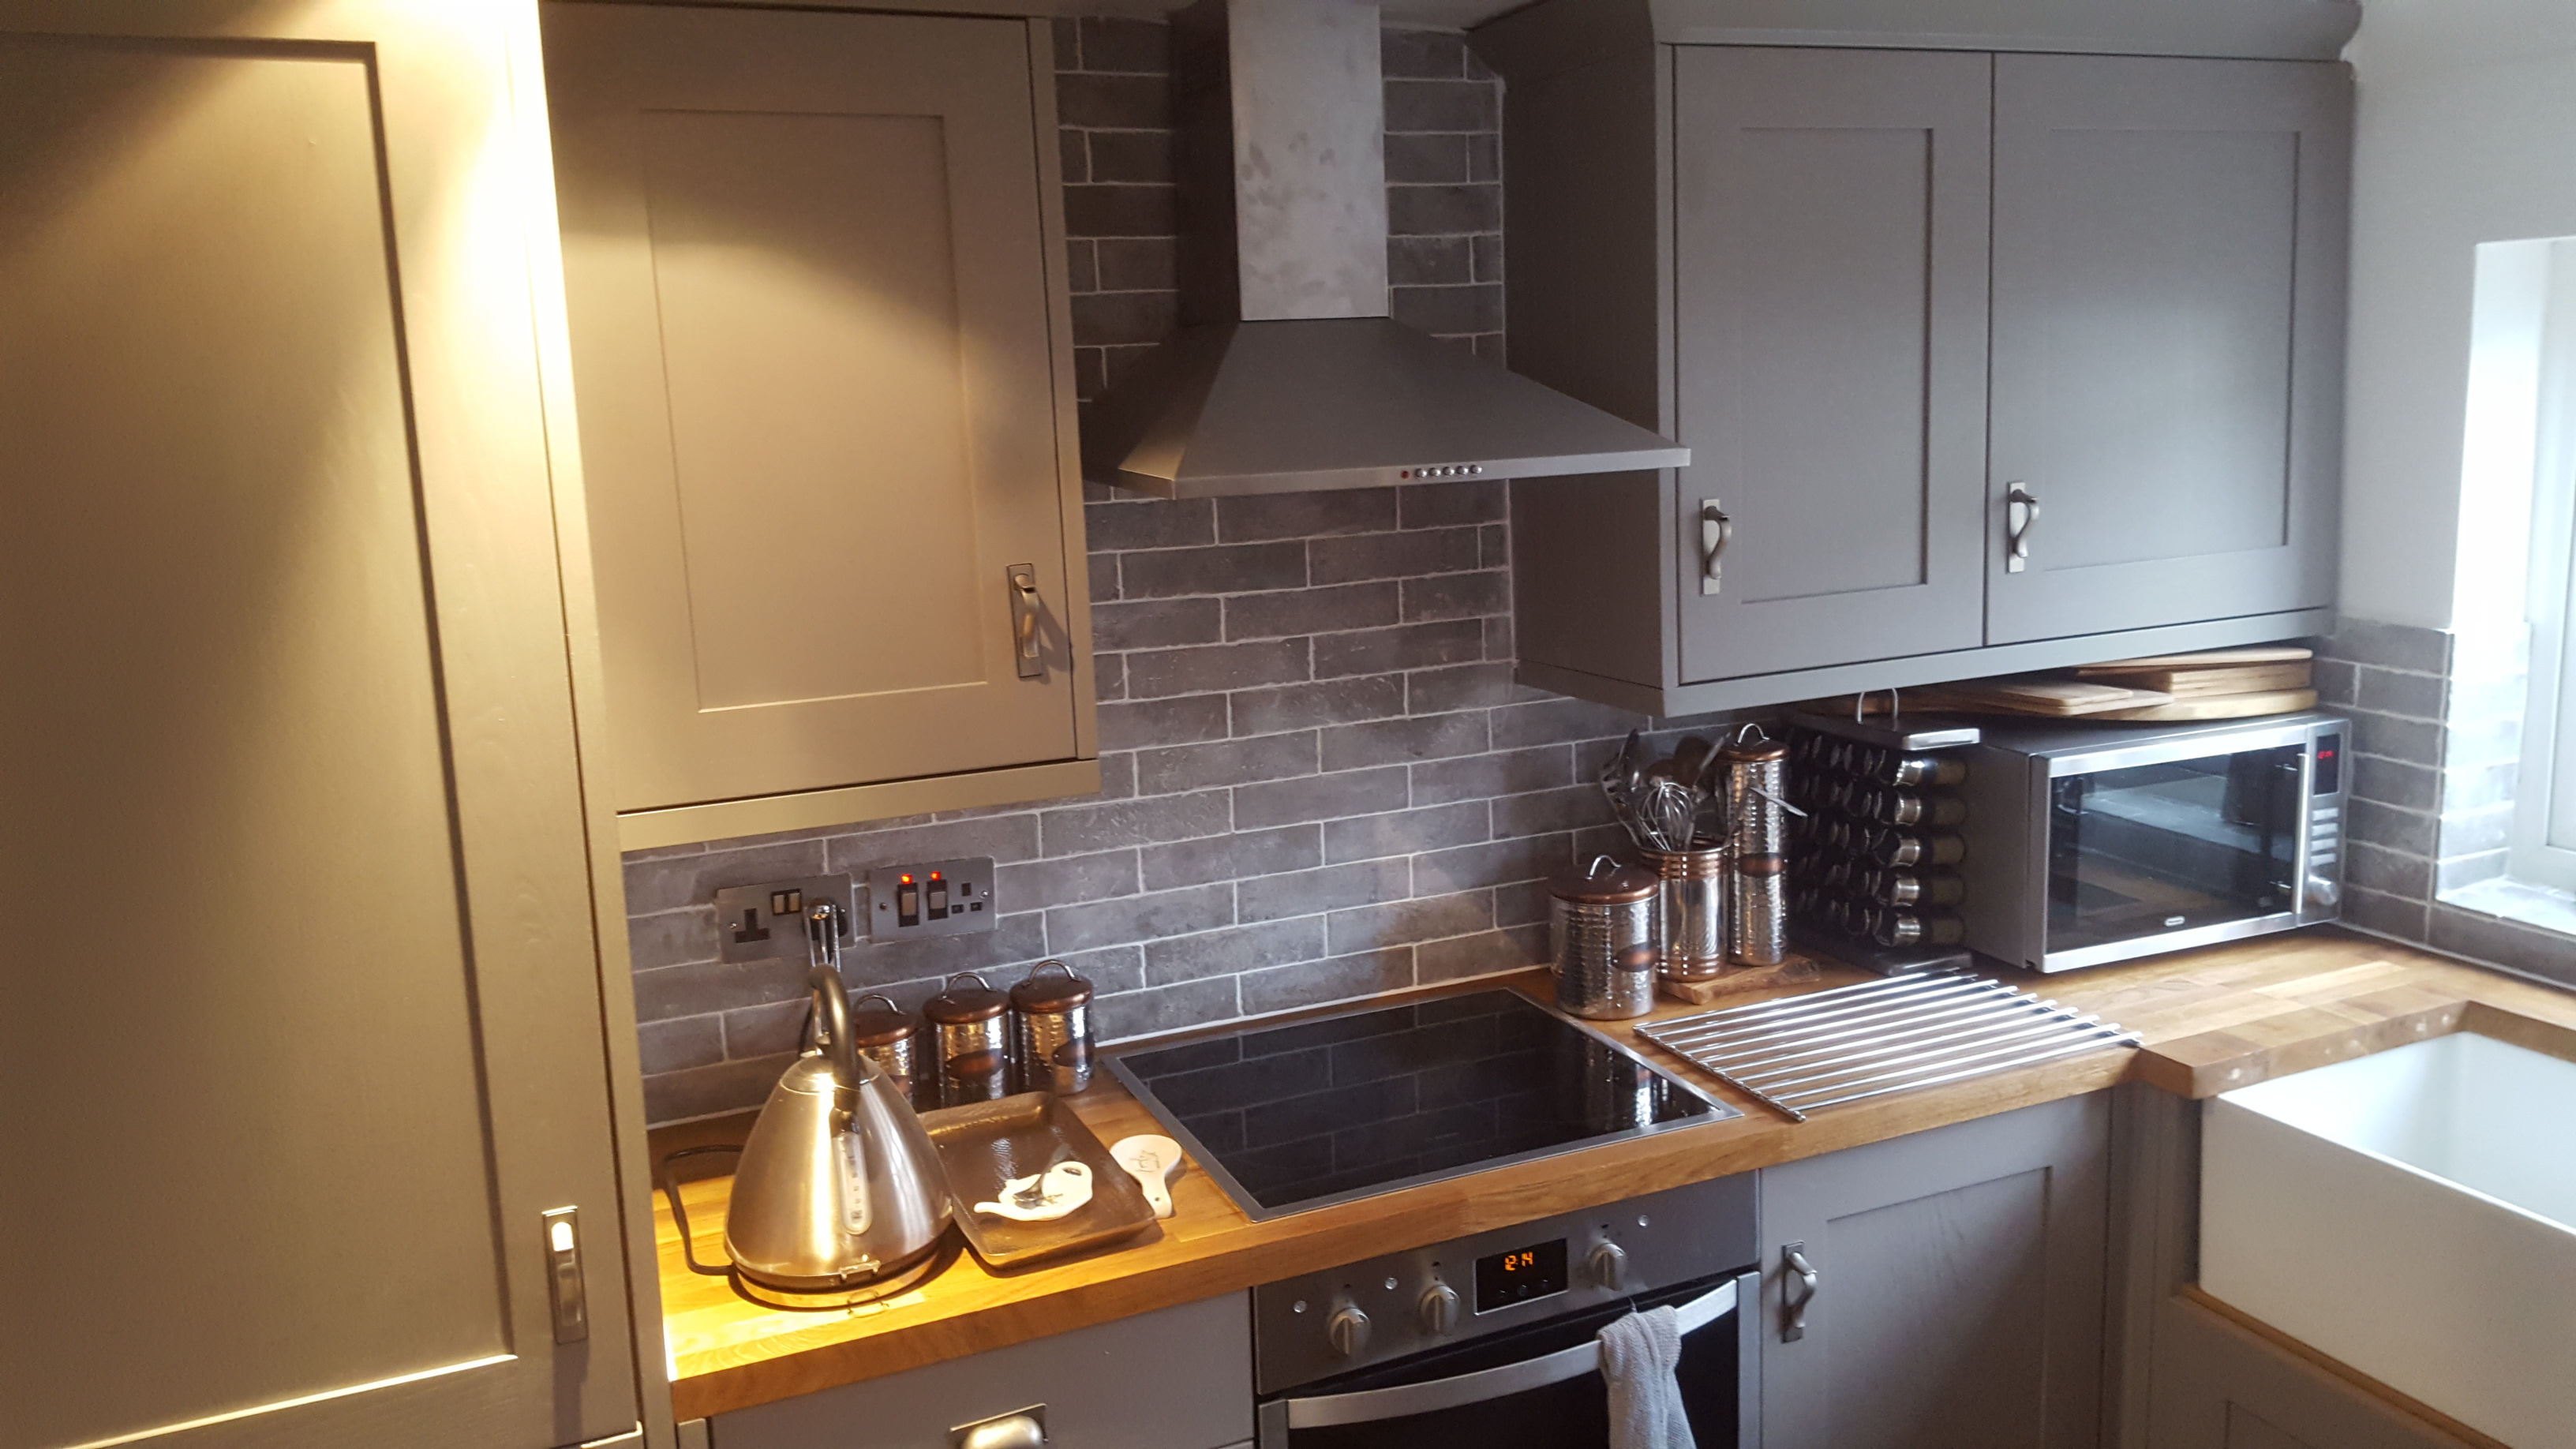 B&q Kitchen Fitting B Q Kitchen In Enfield Town North London Ponari